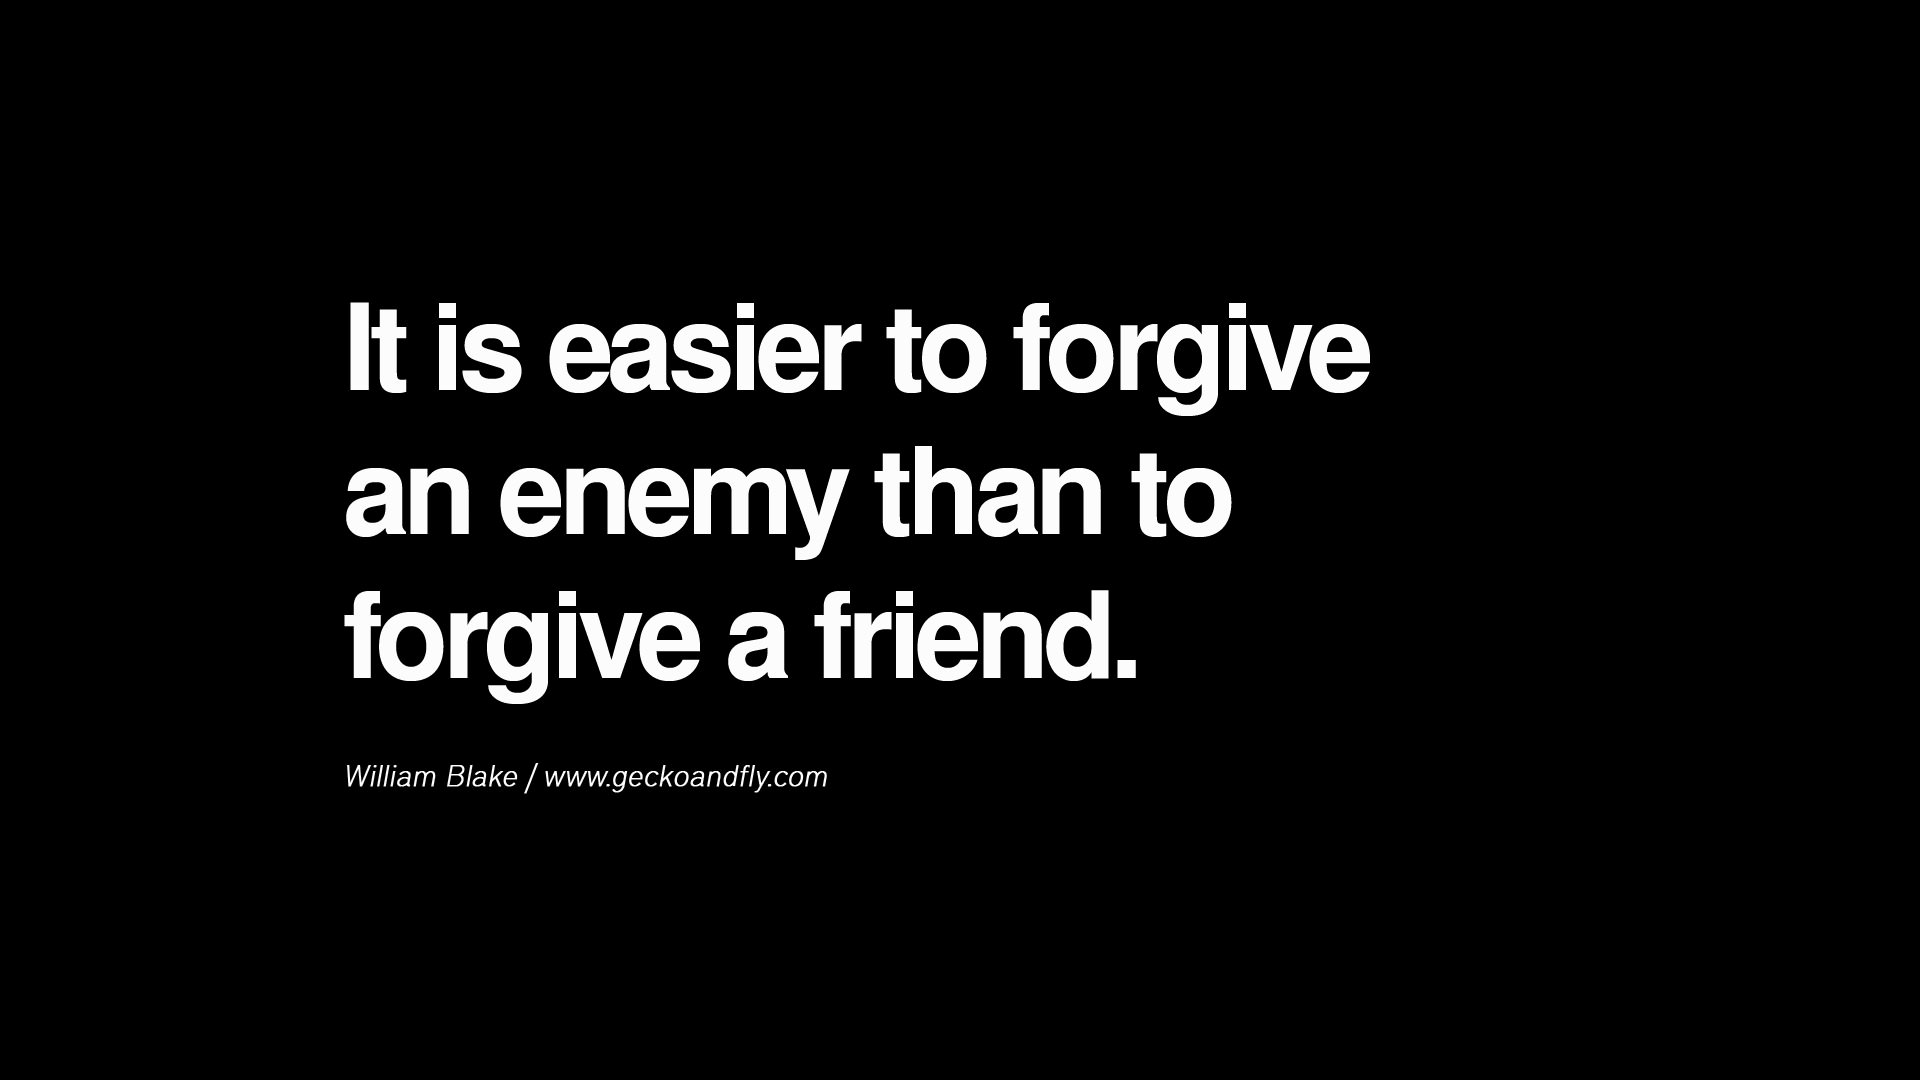 From A Friend Betrayal Quotes: Best Quotes About Betrayal. QuotesGram